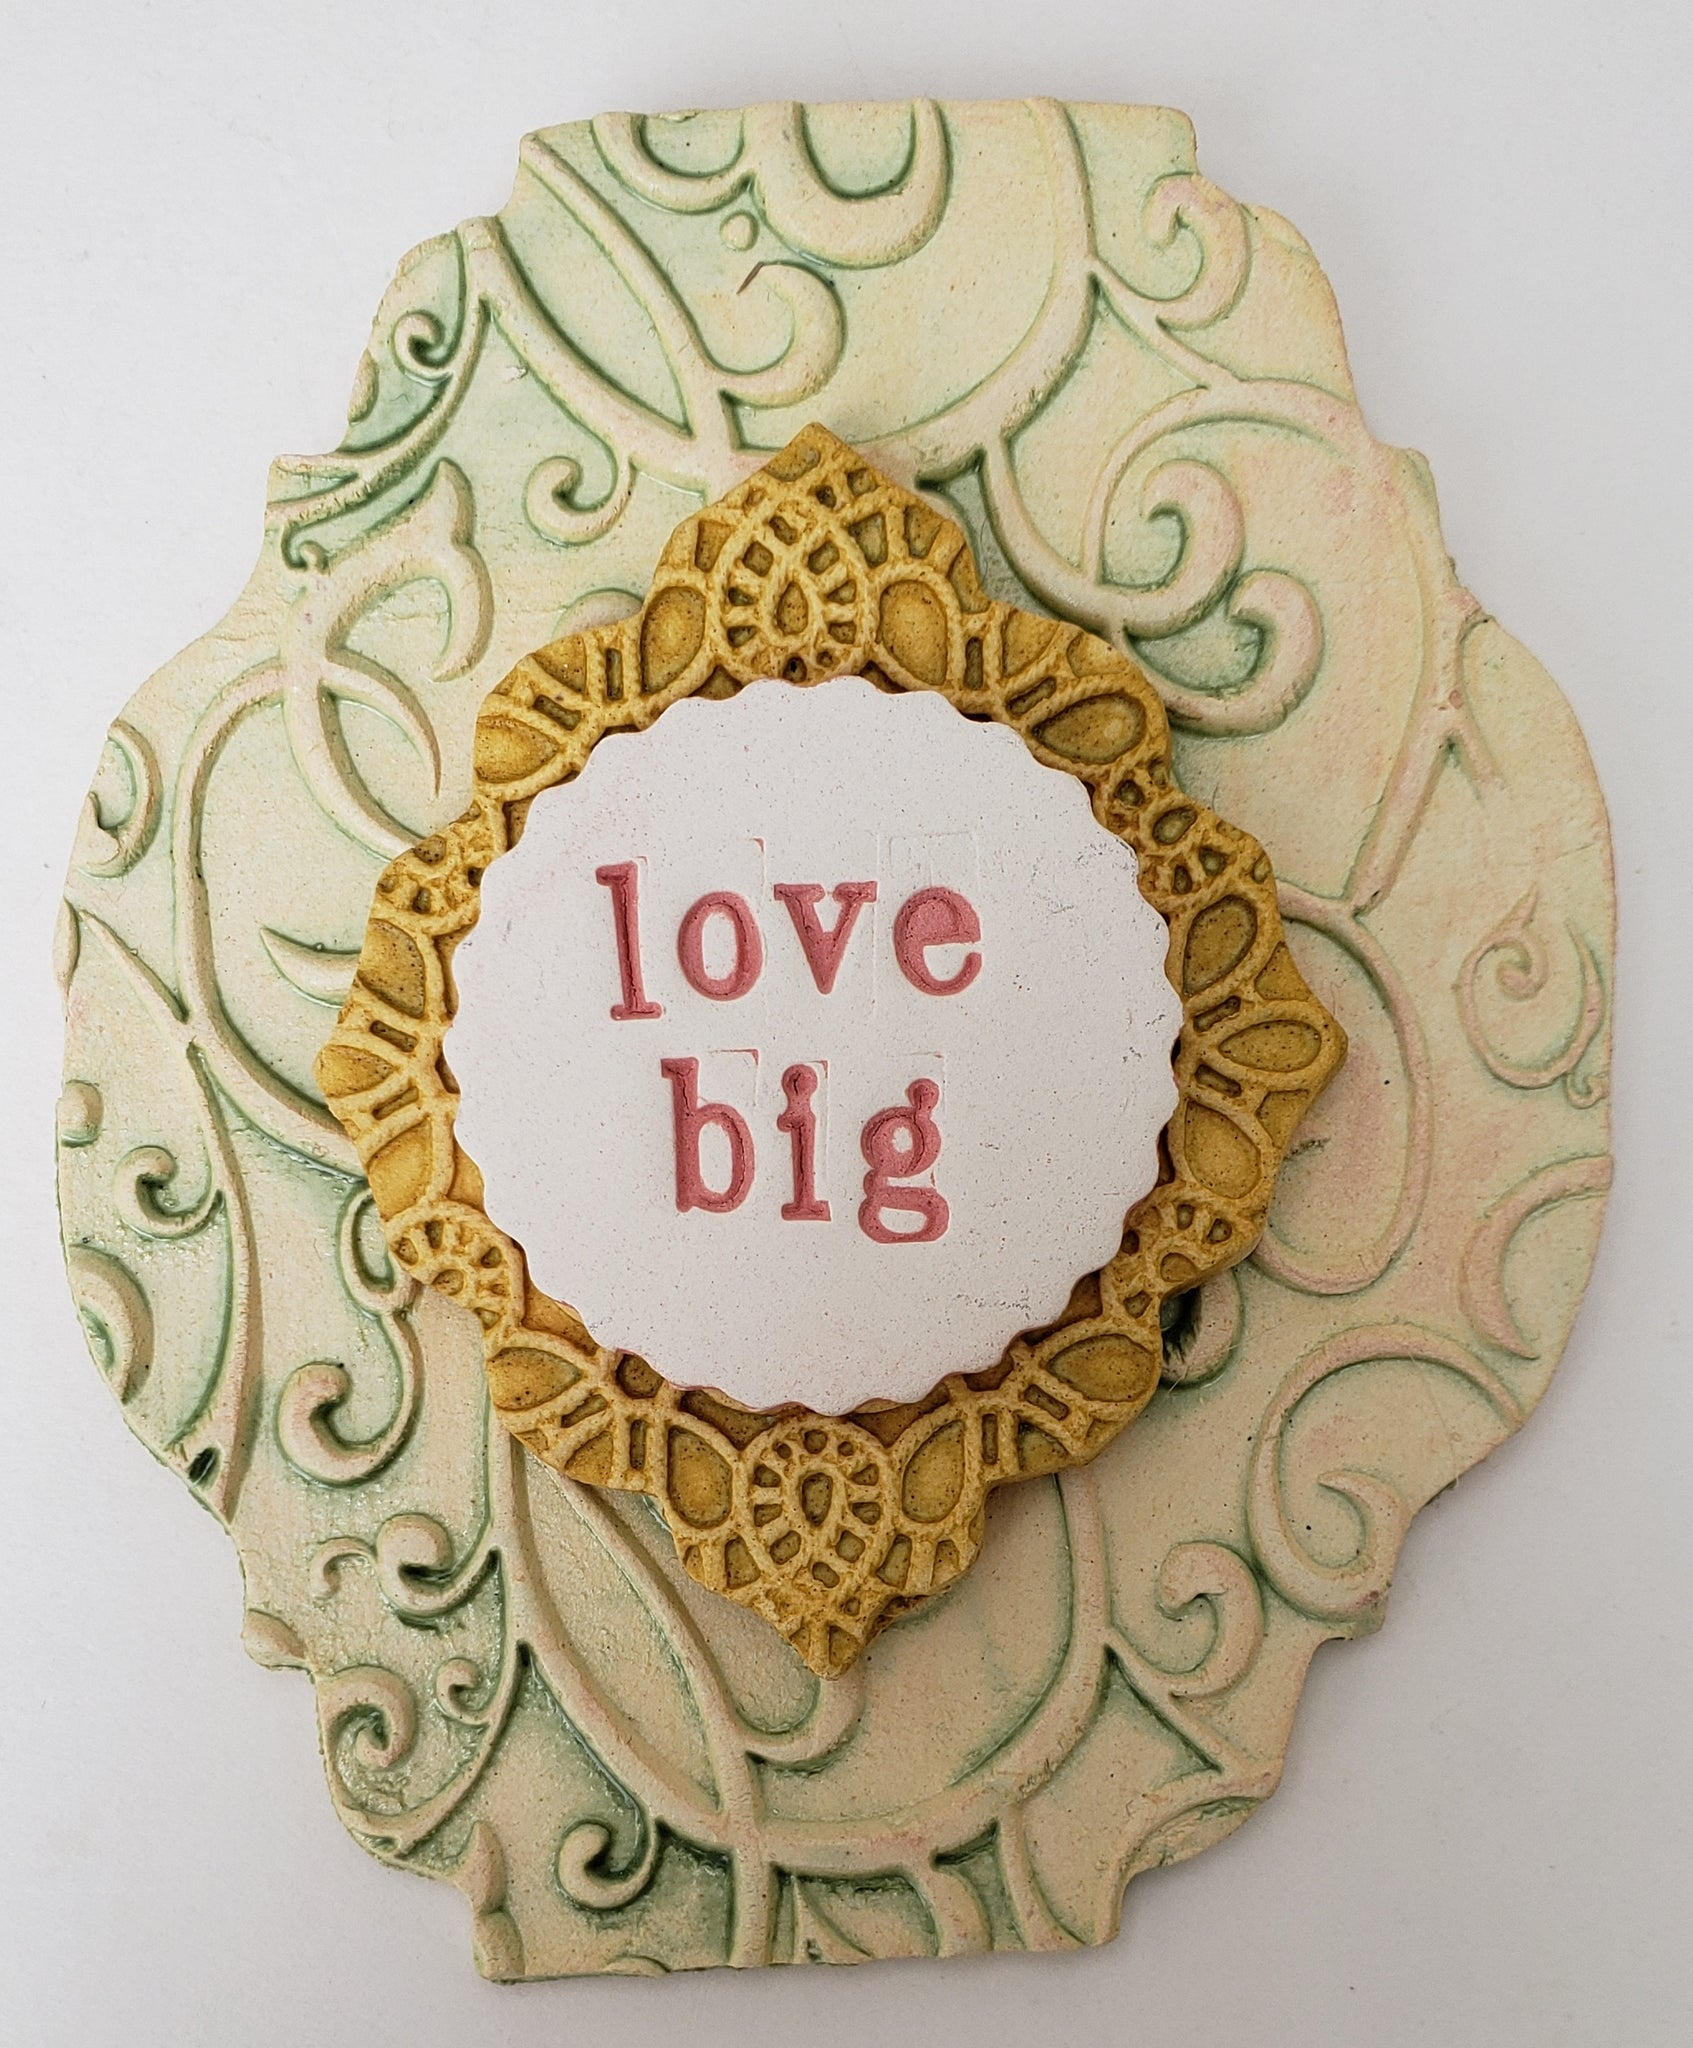 Love Big Word Plaque - Artworks by Karen Fincannon